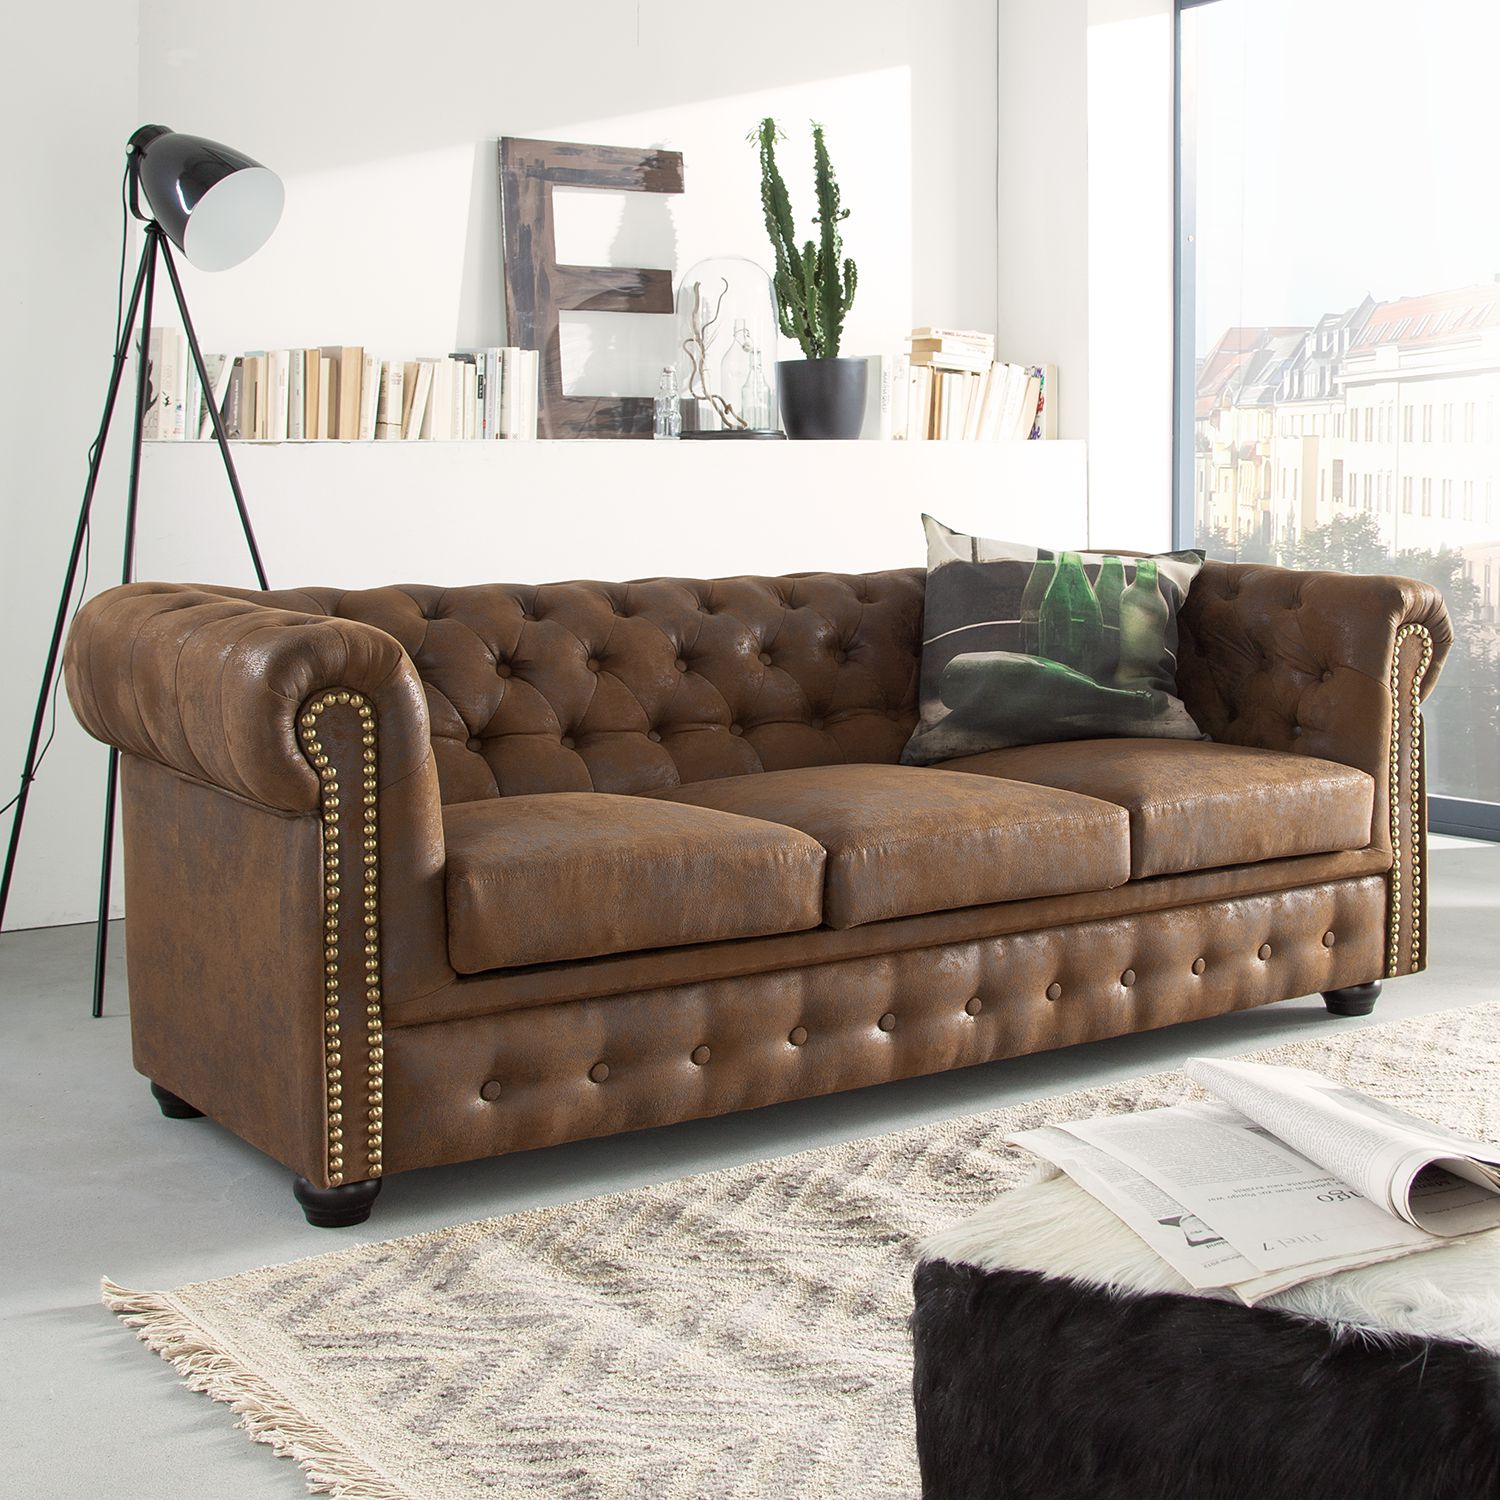 sofa microfaser braun best castello ecksofa molly ab caxcm braun with sofa microfaser braun. Black Bedroom Furniture Sets. Home Design Ideas